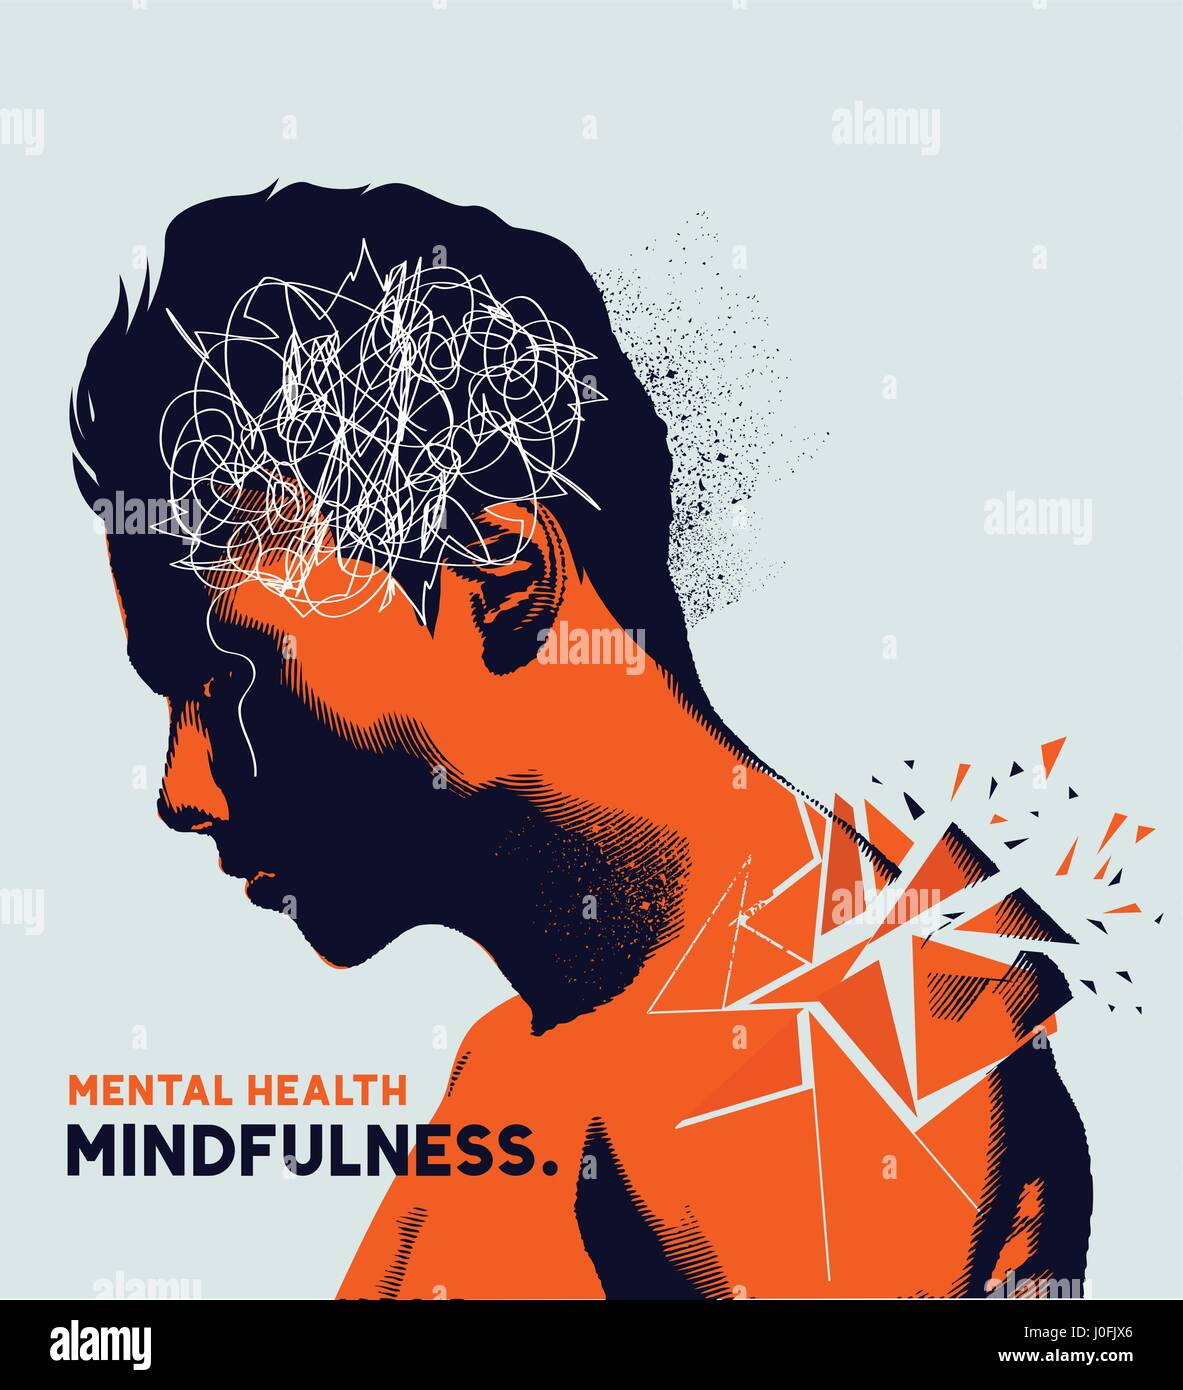 A man with his head lowered shattering showing mental health issues. Anxiety, depression and mindfulness awareness - Stock Image